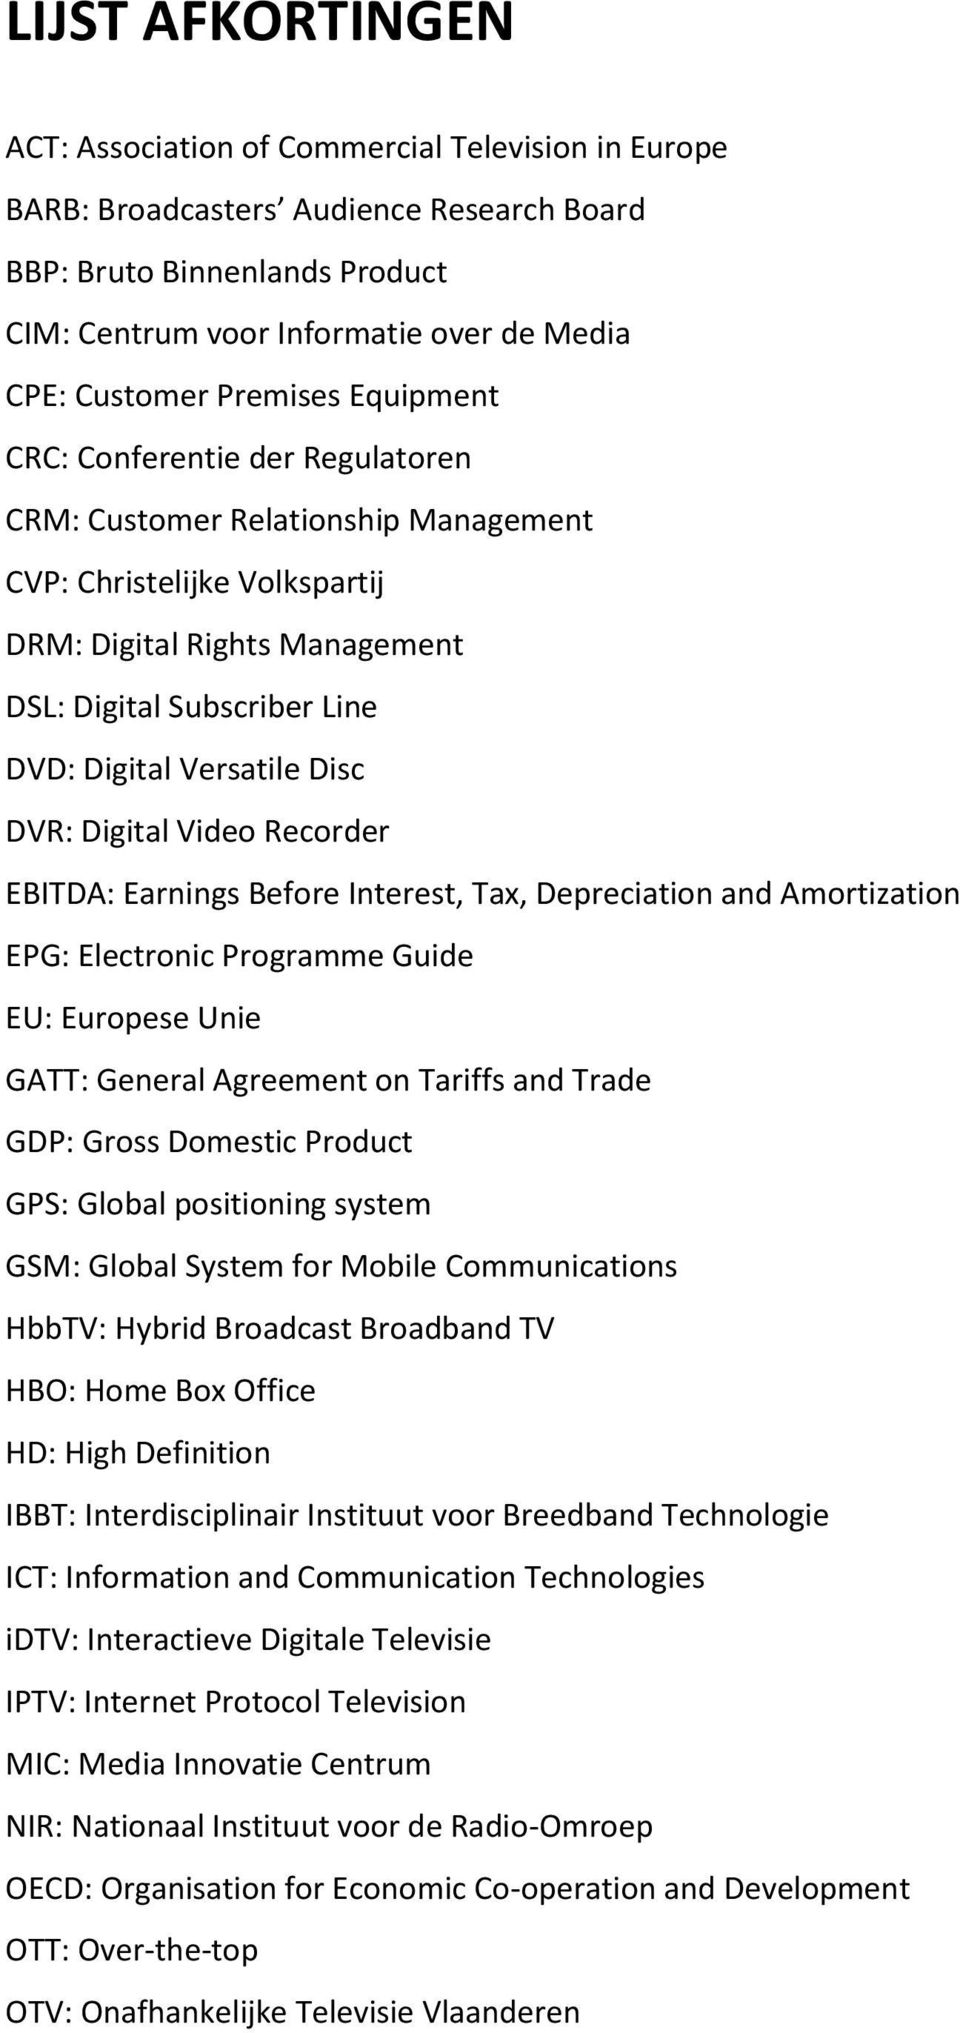 Digital Versatile Disc DVR: Digital Video Recorder EBITDA: Earnings Before Interest, Tax, Depreciation and Amortization EPG: Electronic Programme Guide EU: Europese Unie GATT: General Agreement on